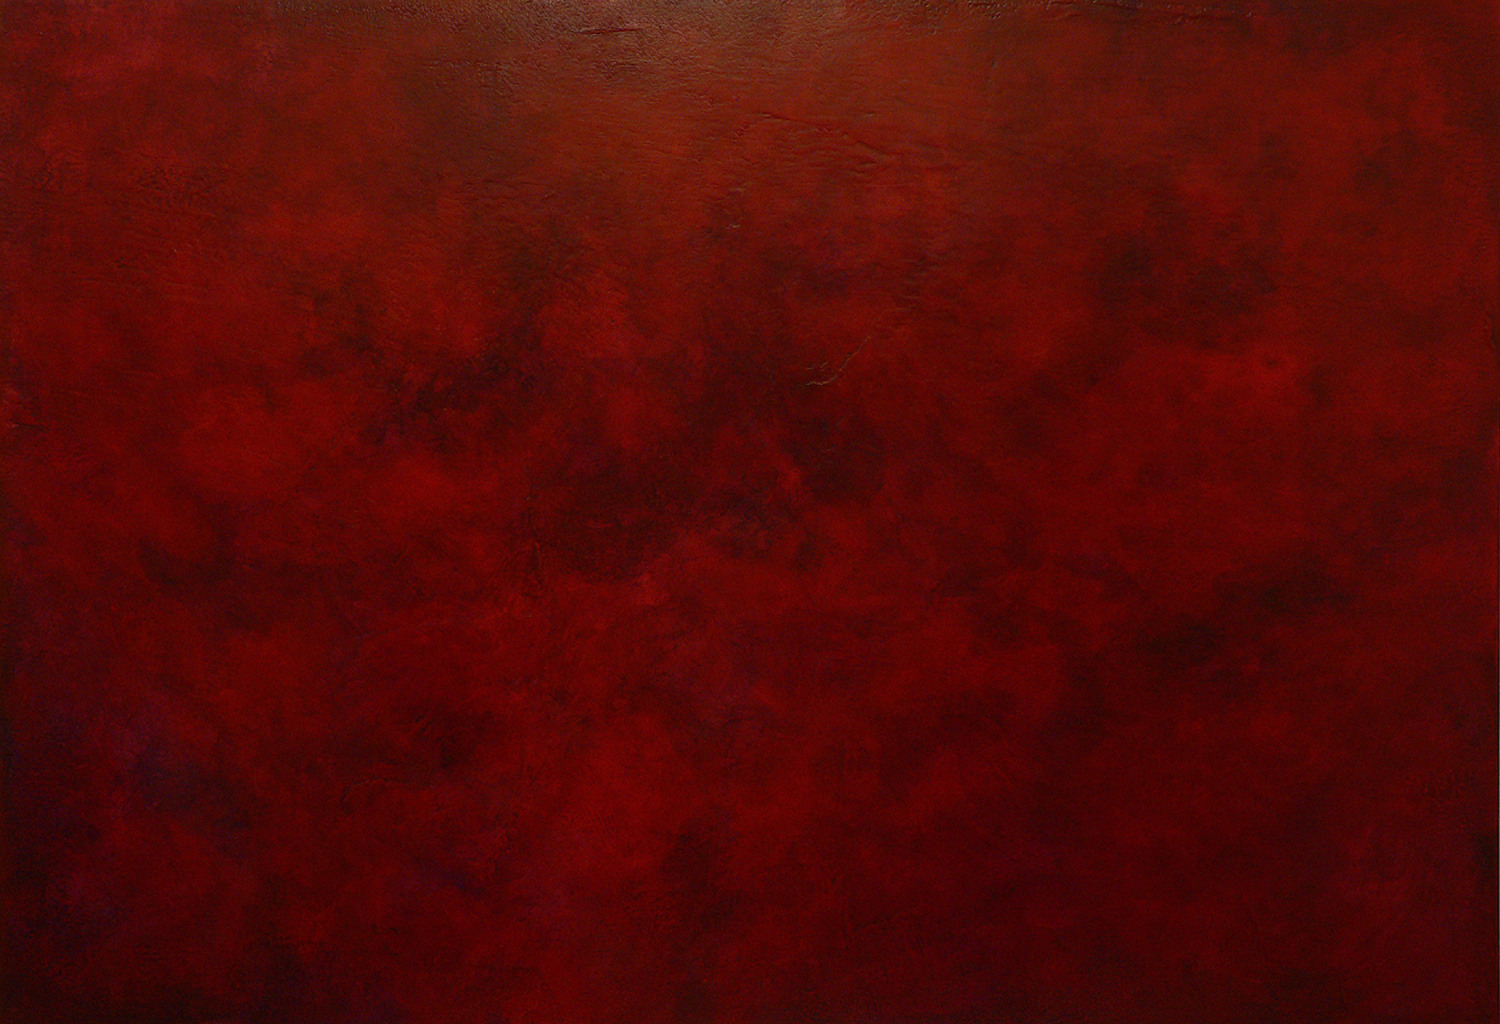 as time goes by - 90 x 130 cm - acrylic and plaster on canvas - 2005